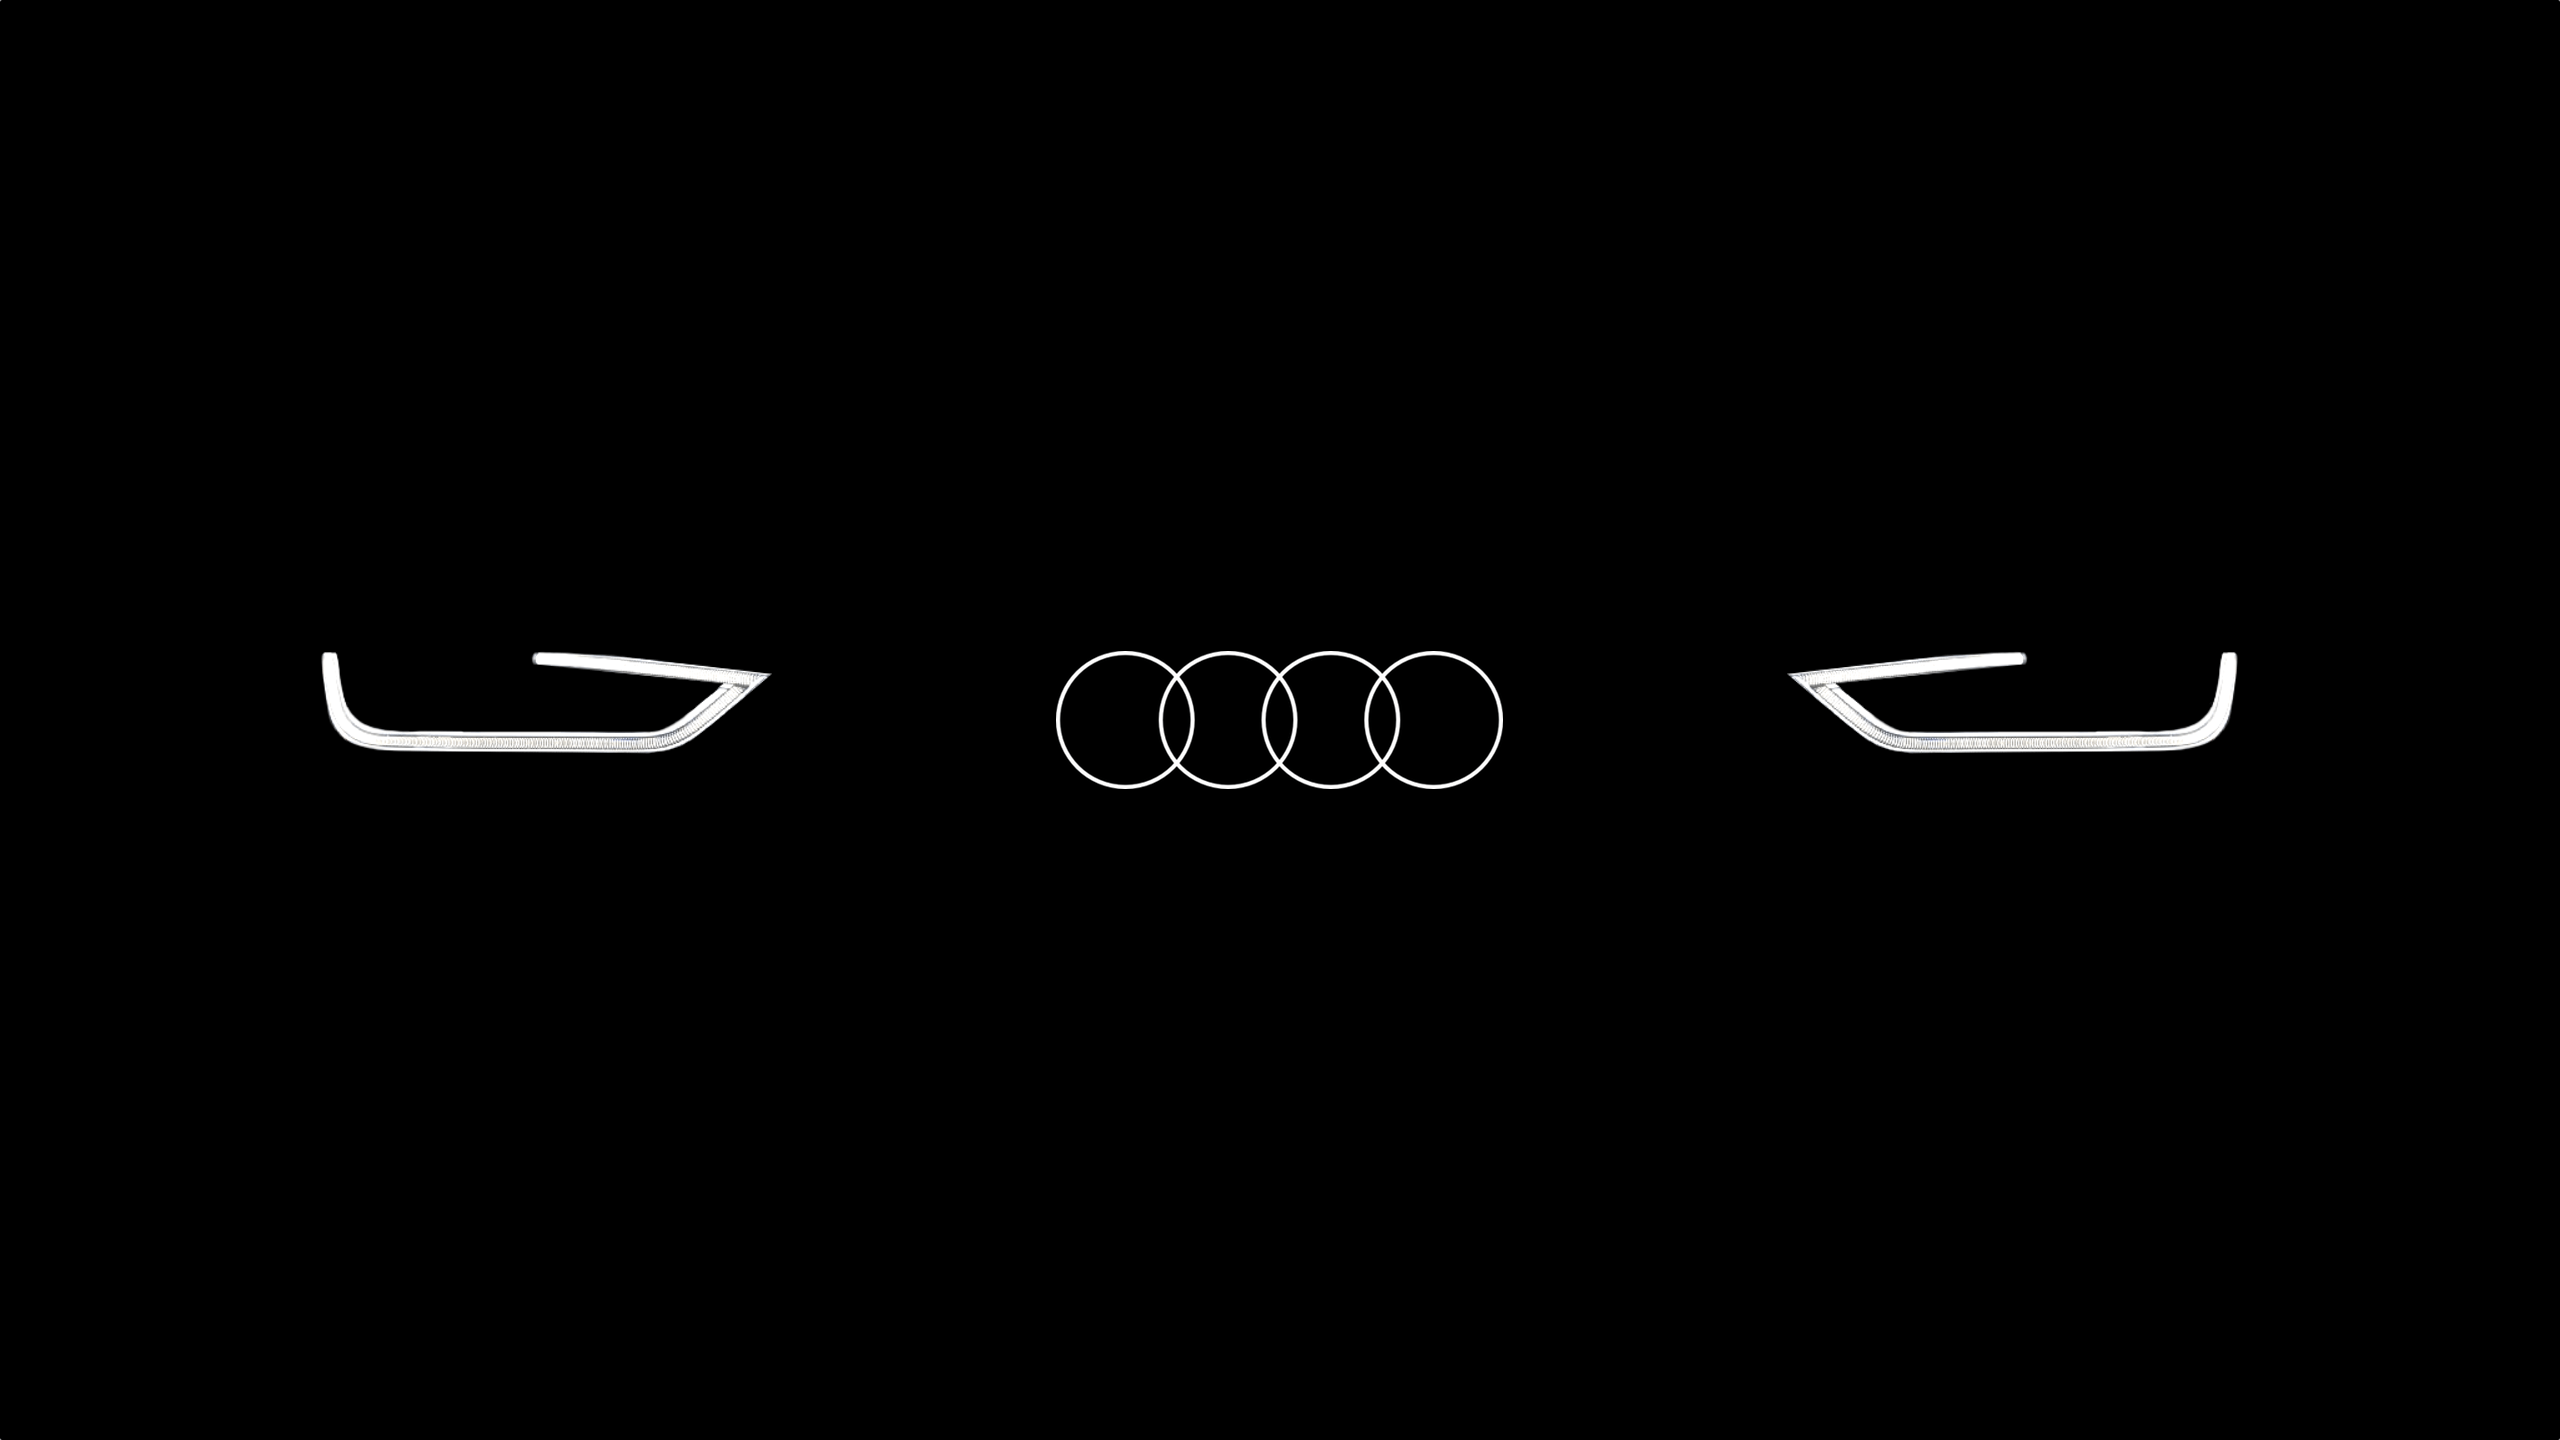 Audi Wallpapers Iphone Free Download Sports Car Full Hd Cars For